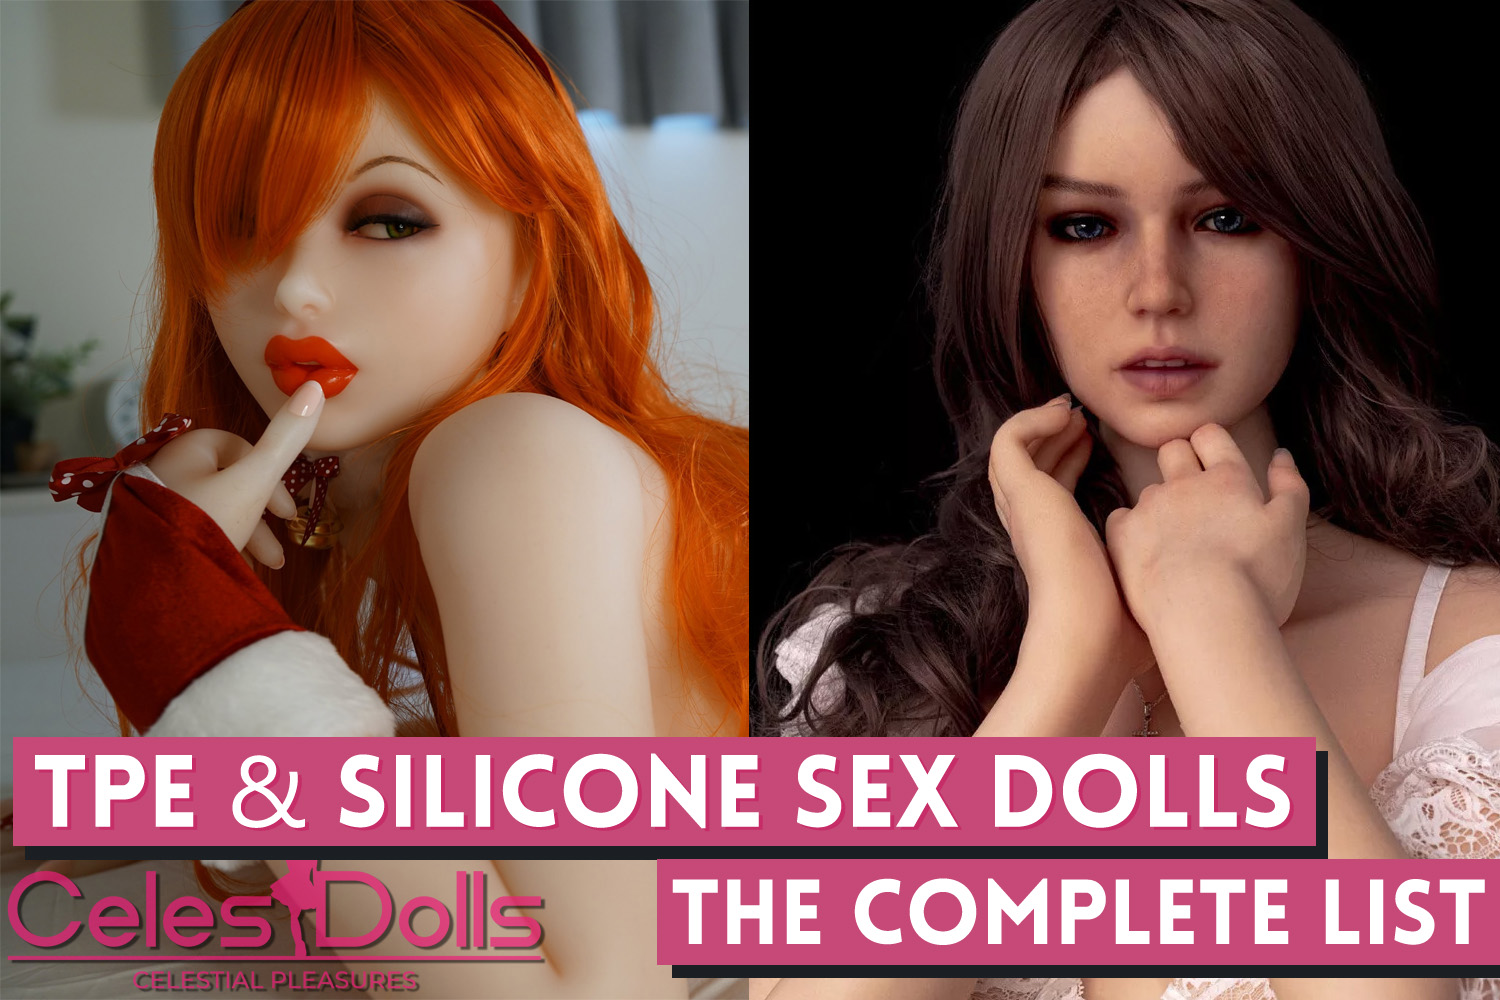 Complete List of Top TPE and Silicone Sex Doll Brands